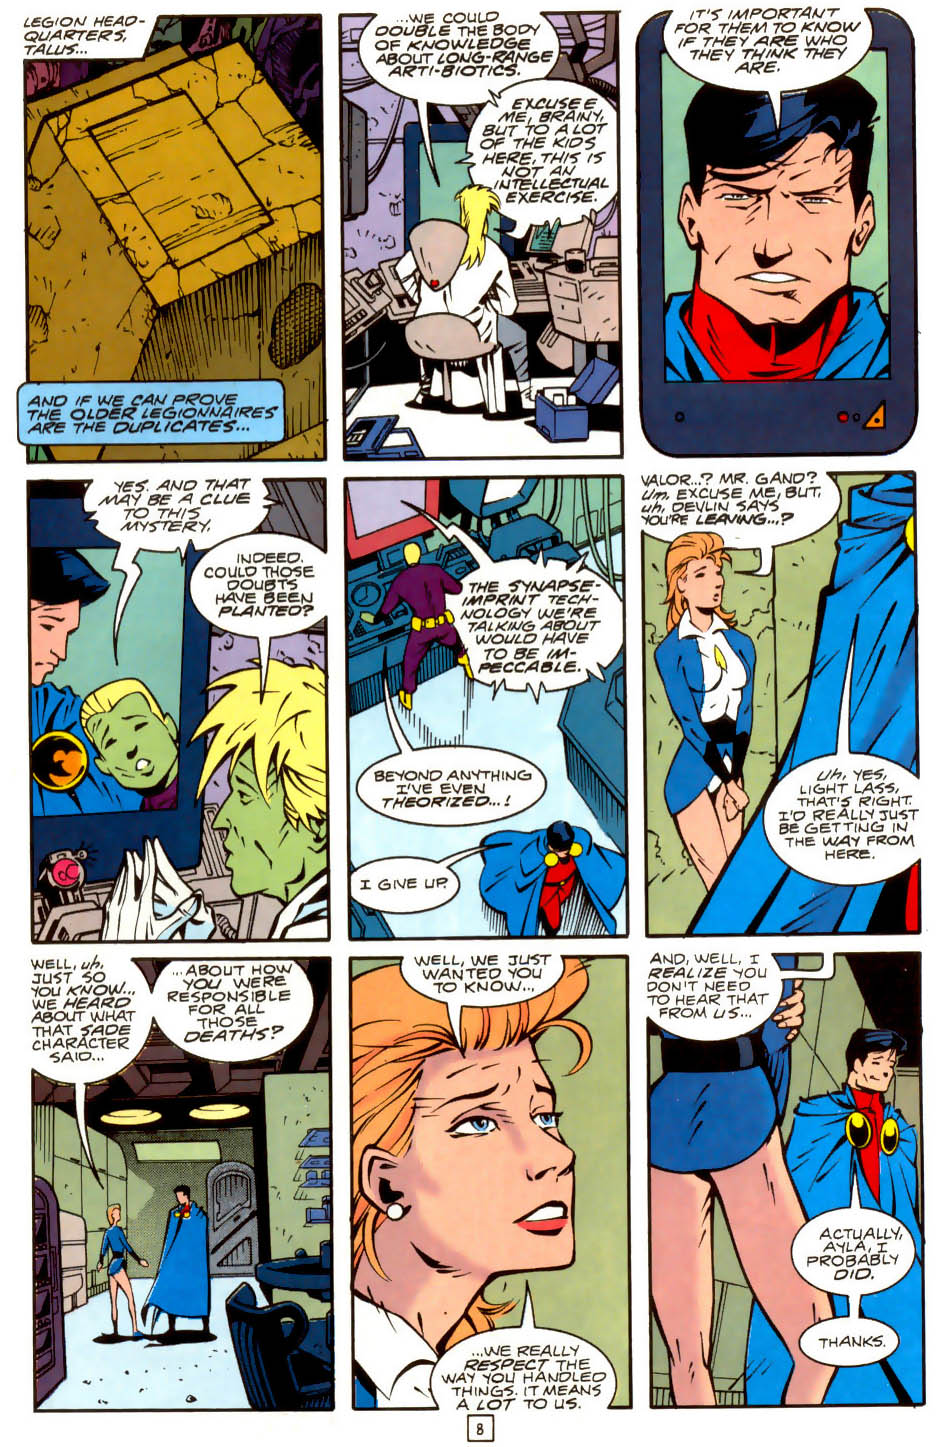 Legion of Super-Heroes (1989) 36 Page 8